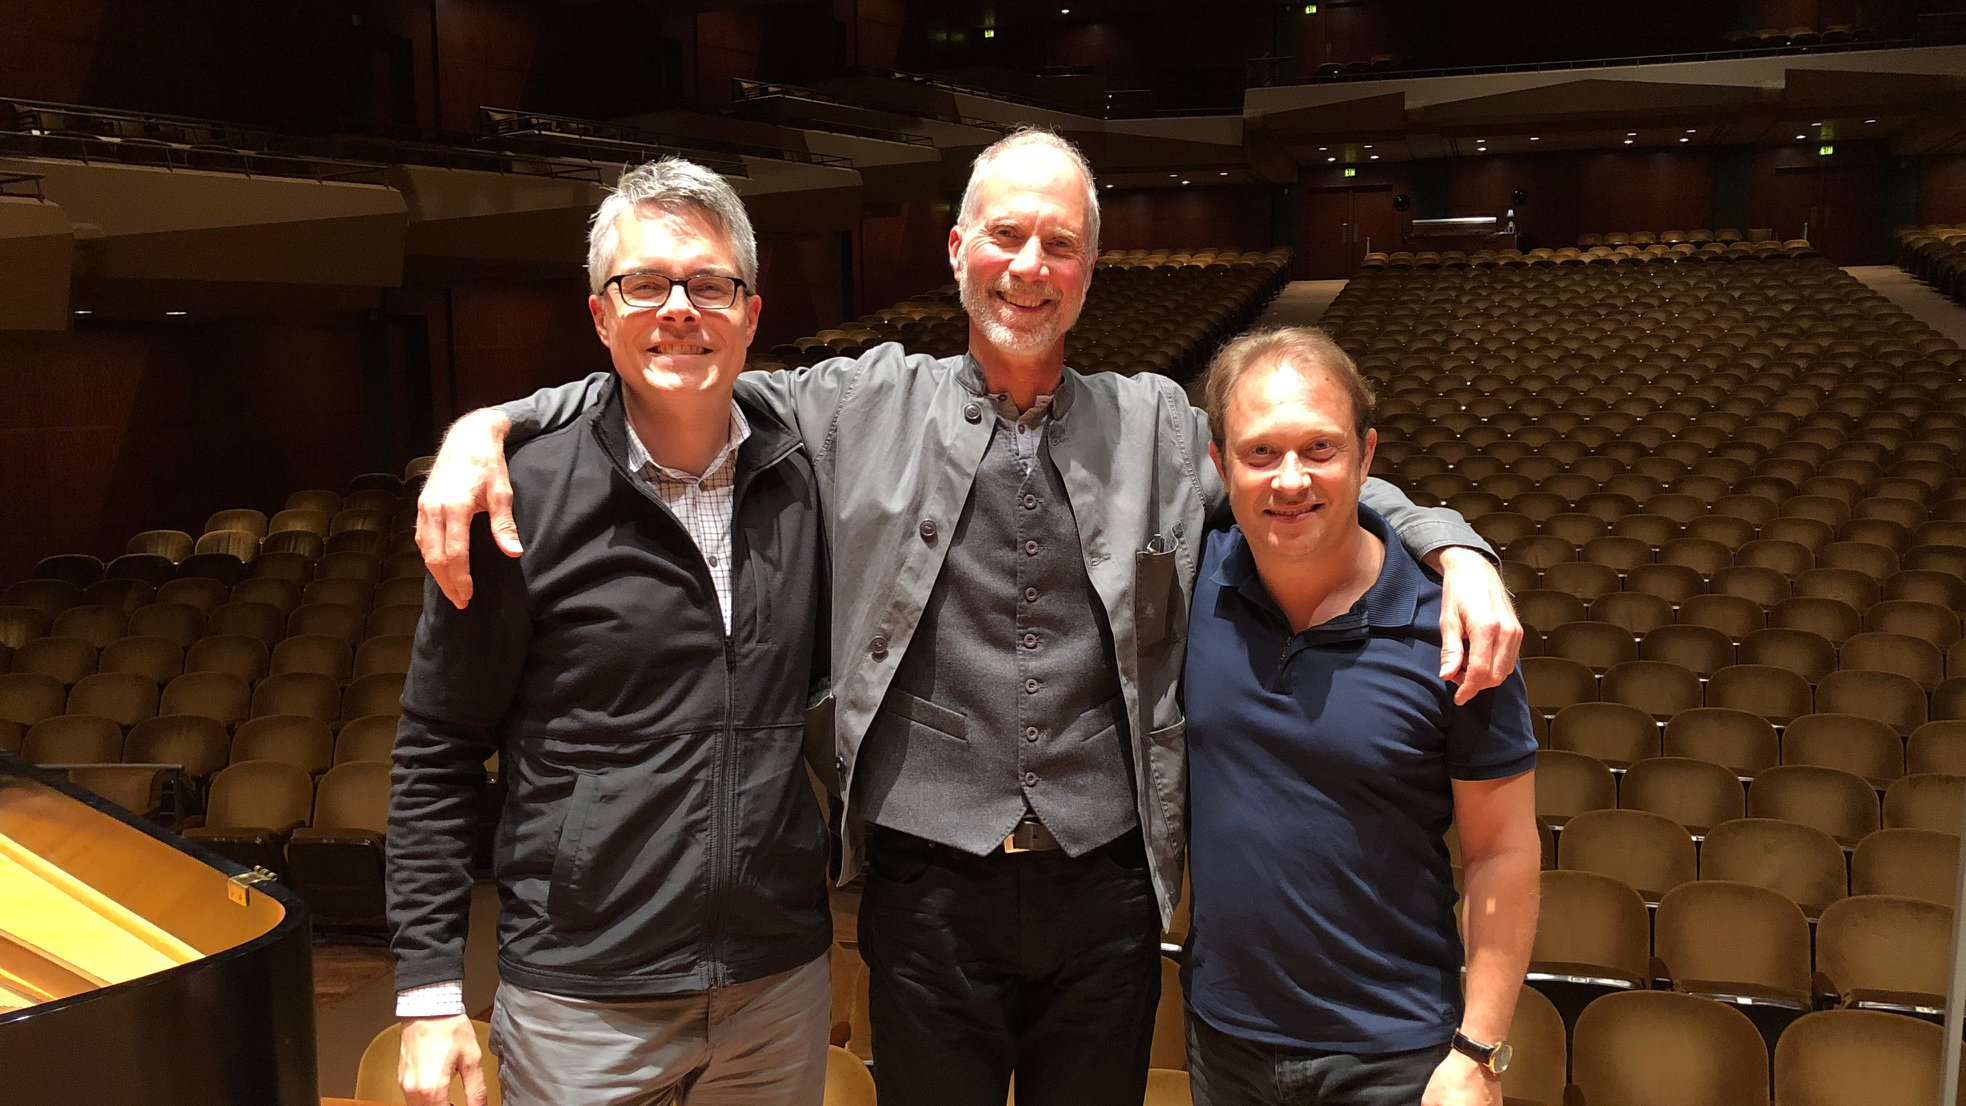 Nathaniel Reichman, John Luther Adams, and Ludovic Morlot at the recording location.